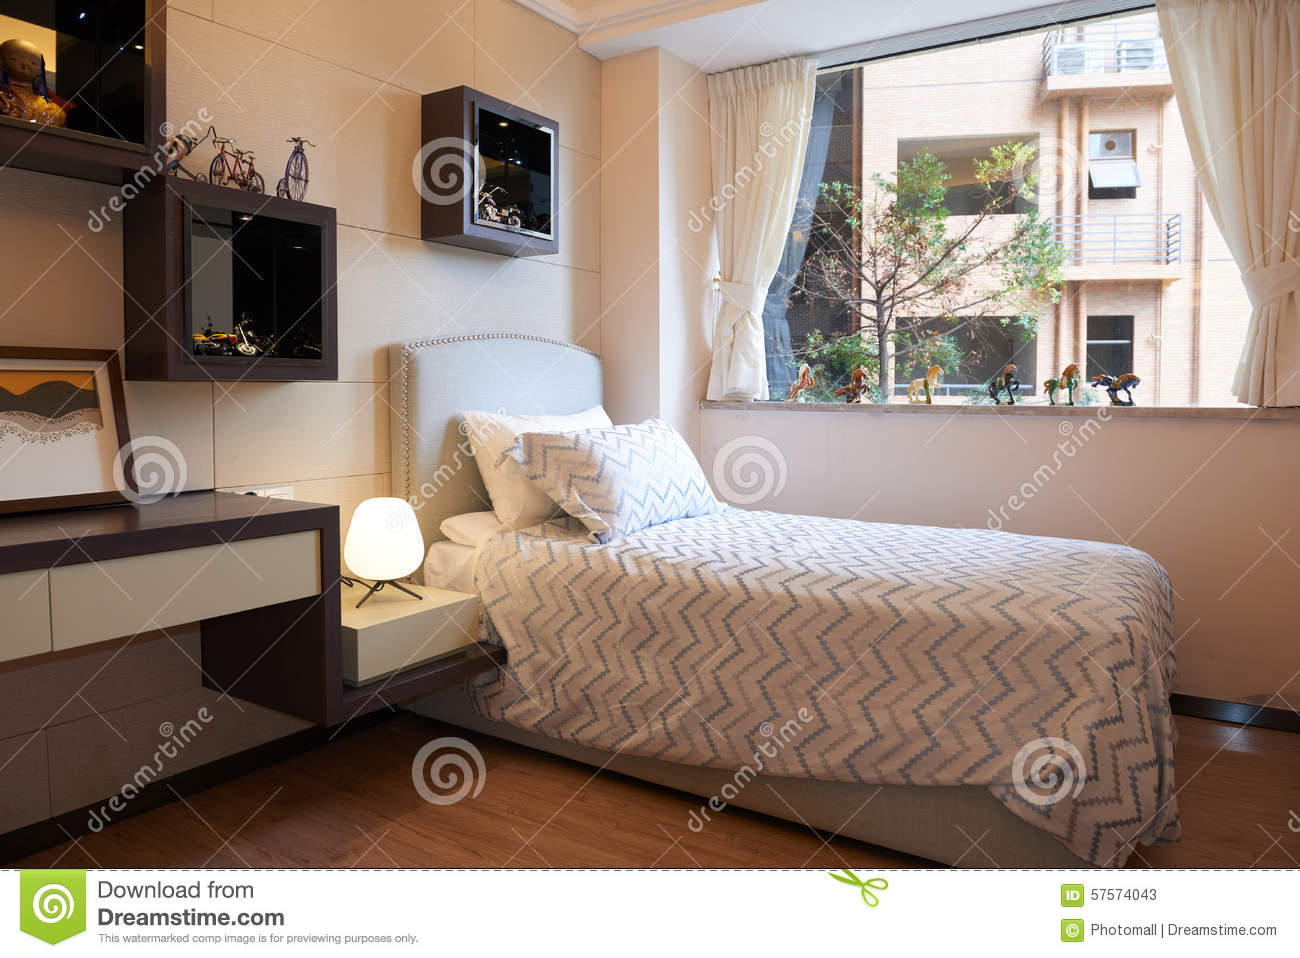 Petite Chambre Coucher Moderne Stock Images - 340 Photos